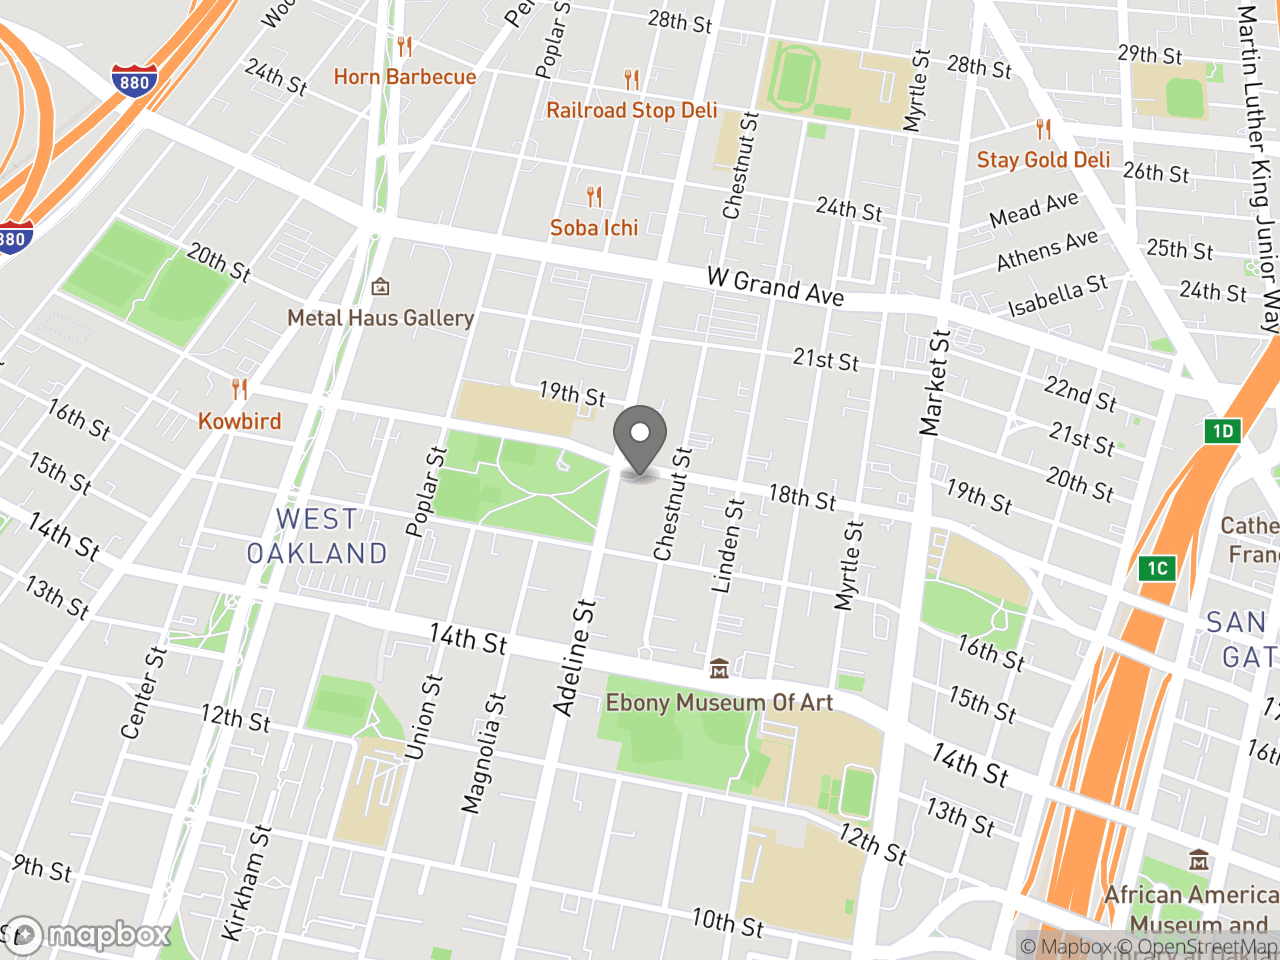 Map location for Hot Breakfast at West Oakland Senior Center, located at 1724 Adeline St in Oakland, CA 94607